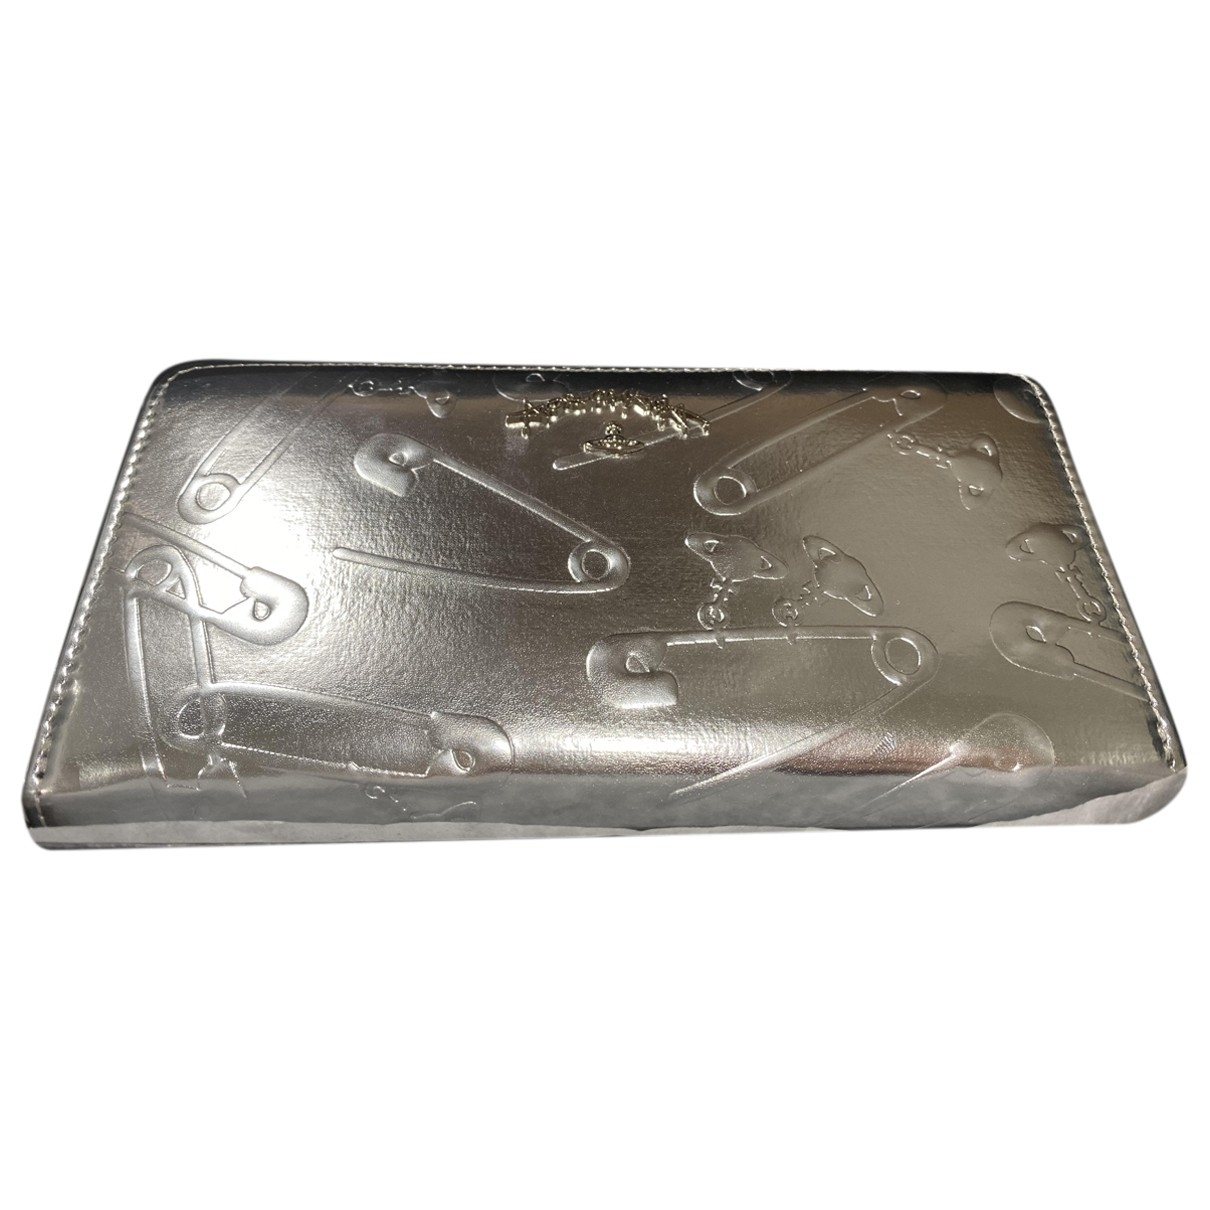 Vivienne Westwood Anglomania \N Silver Leather wallet for Women \N